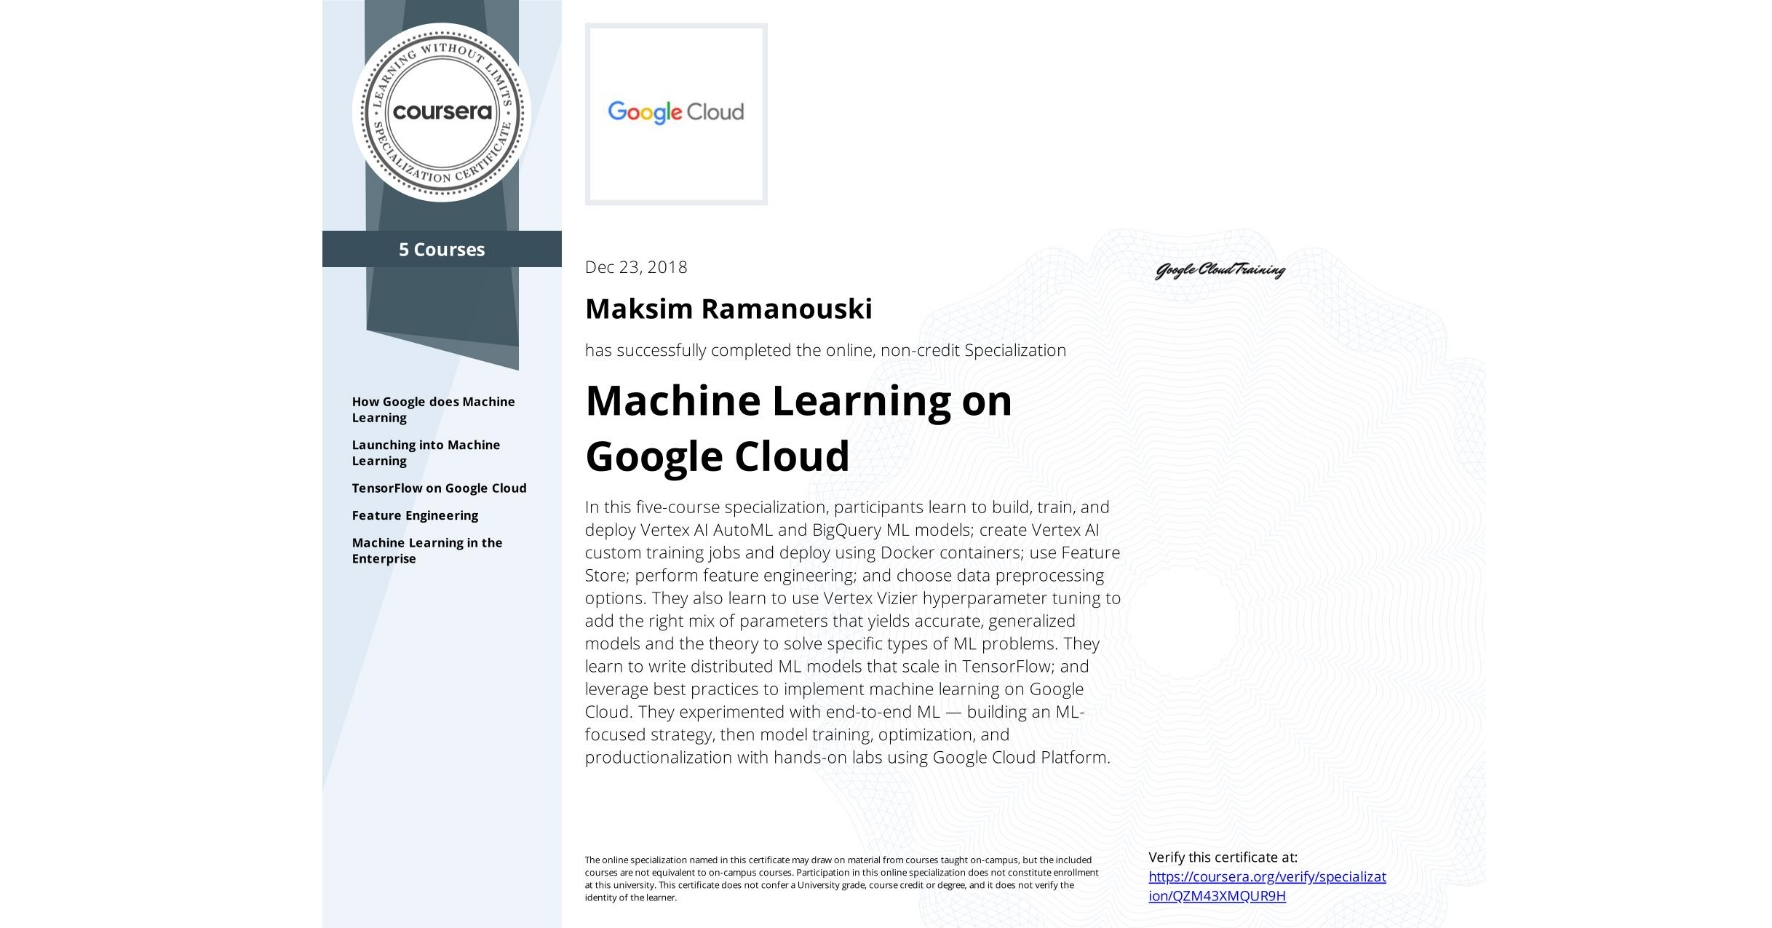 View certificate for Maksim Ramanouski, Machine Learning with TensorFlow on Google Cloud Platform, offered through Coursera. This five-course online specialization teaches course participants how to write distributed machine learning models that scale in Tensorflow, scale out the training of those models. and offer high-performance predictions. Also featured is the conversion of raw data to features in a way that allows ML to learn important characteristics from the data and bring human insight to bear on the problem. It also teaches how to incorporate the right mix of parameters that yields accurate, generalized models and knowledge of the theory to solve specific types of ML problems. Course participants experimented with end-to-end ML, starting from building an ML-focused strategy and progressing into model training, optimization, and productionalization with hands-on labs using Google Cloud Platform.